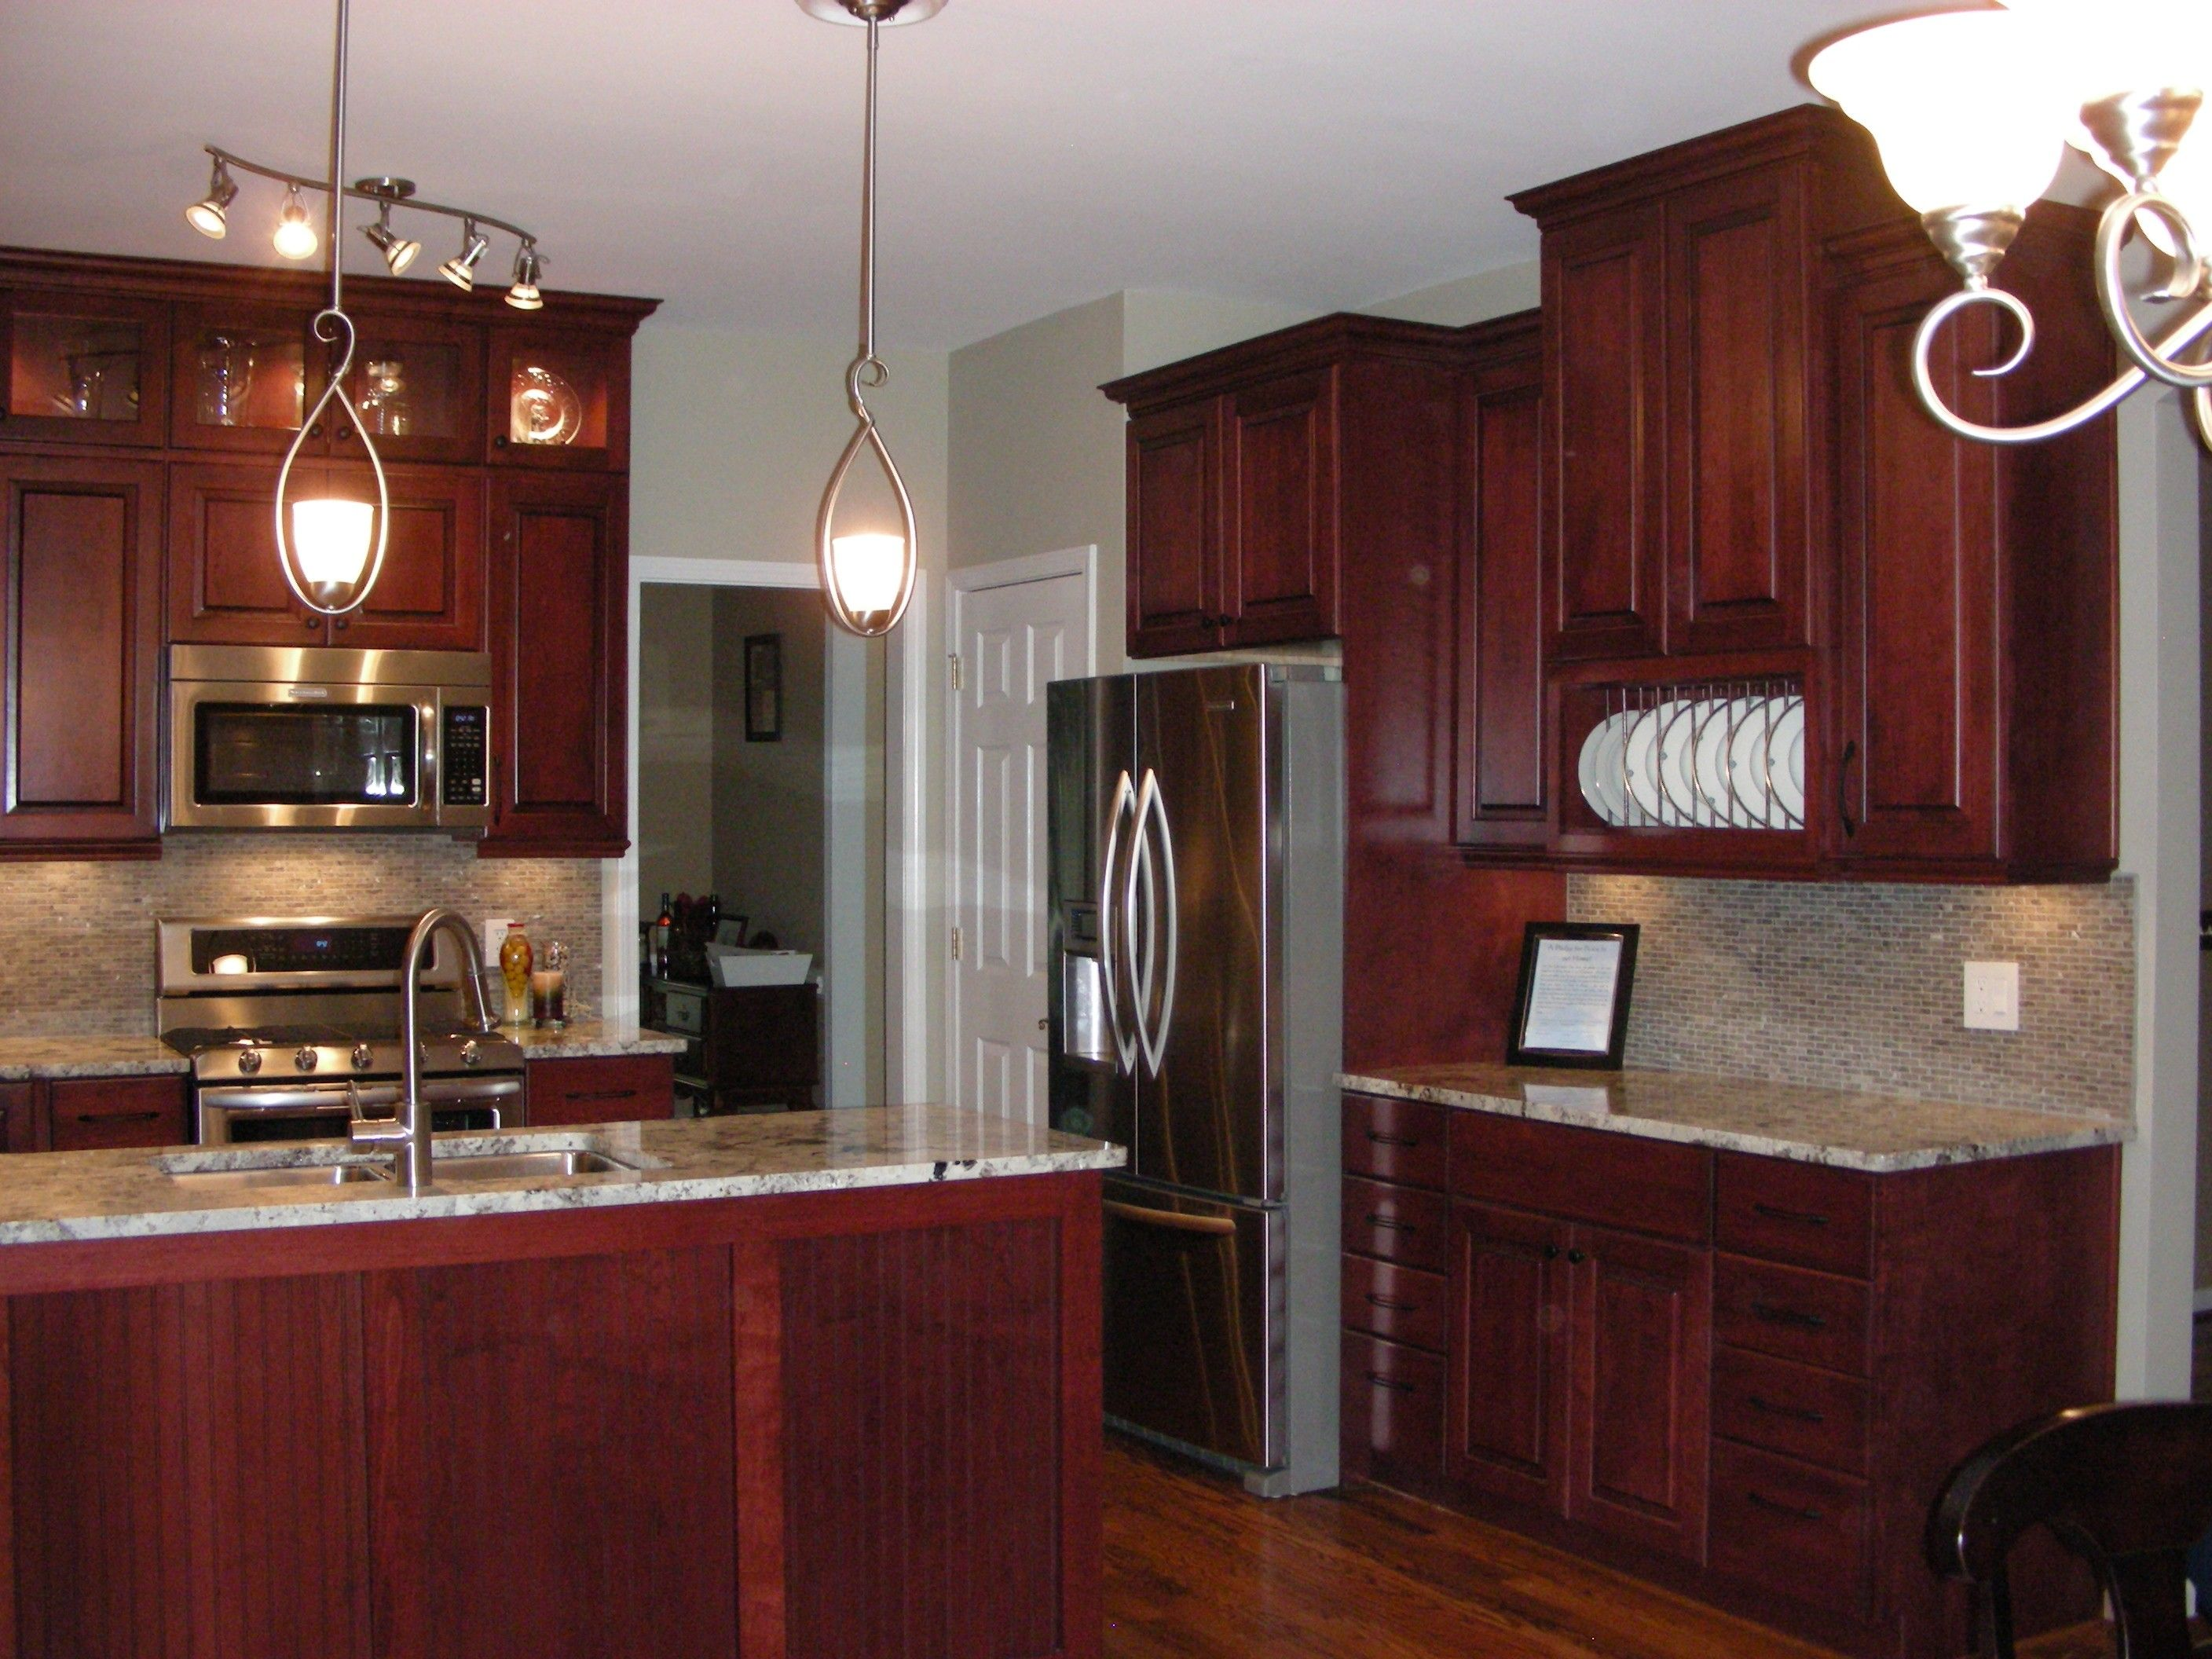 Kitchen Paint Colors With Cherry Cabinets Cherry Kitchen Cabinets Wall Color Gray Kitch Cherry Wood Kitchen Cabinets Grey Kitchen Walls Cherry Cabinets Kitchen